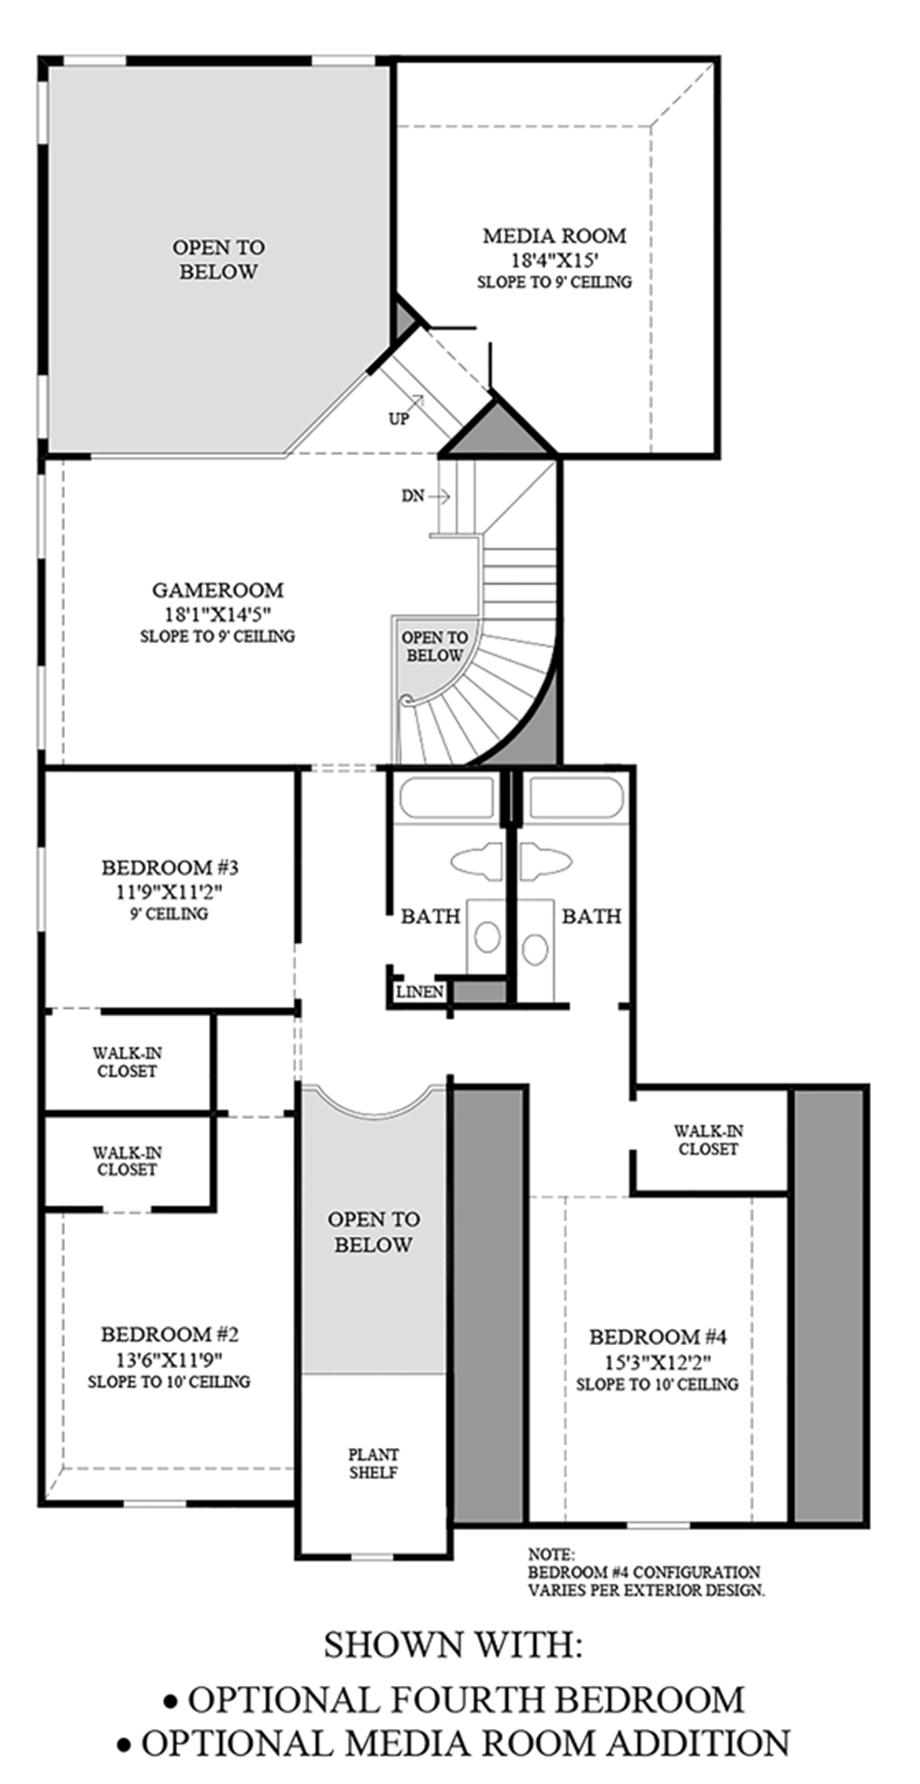 Optional Fourth Bedroom and Media Room Addition Floor Plan